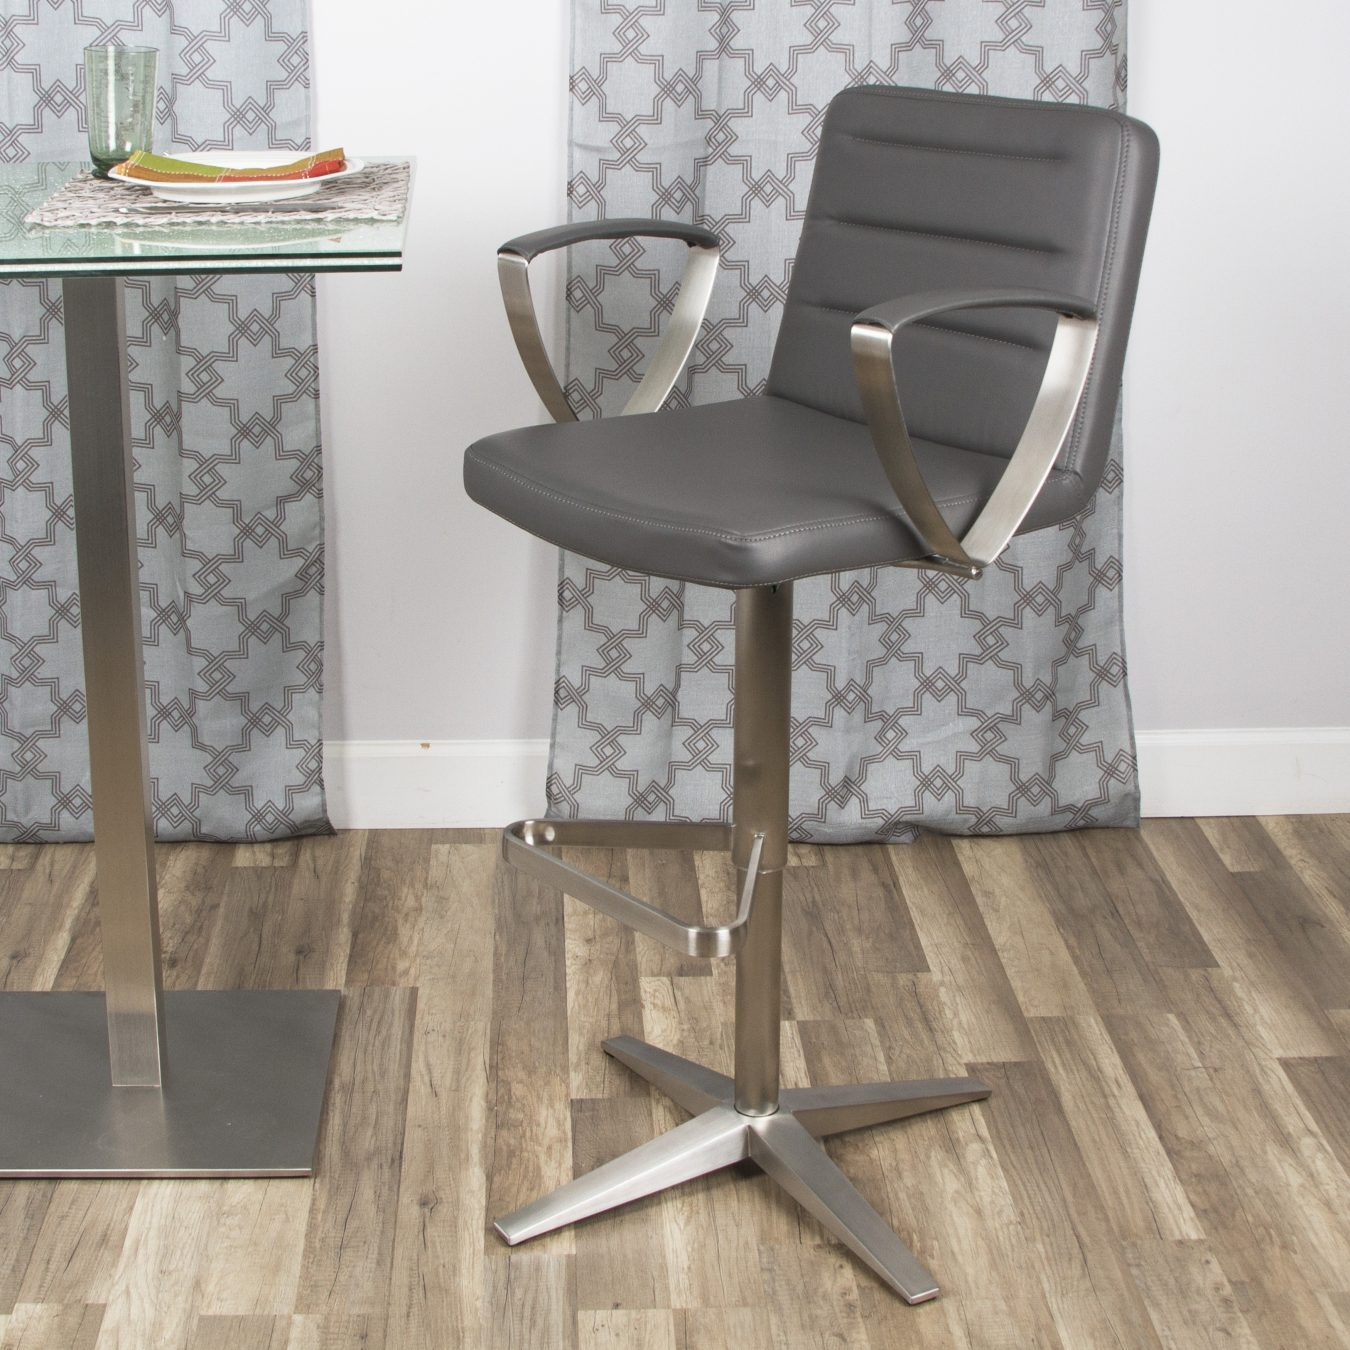 Rexx Stainless Stool